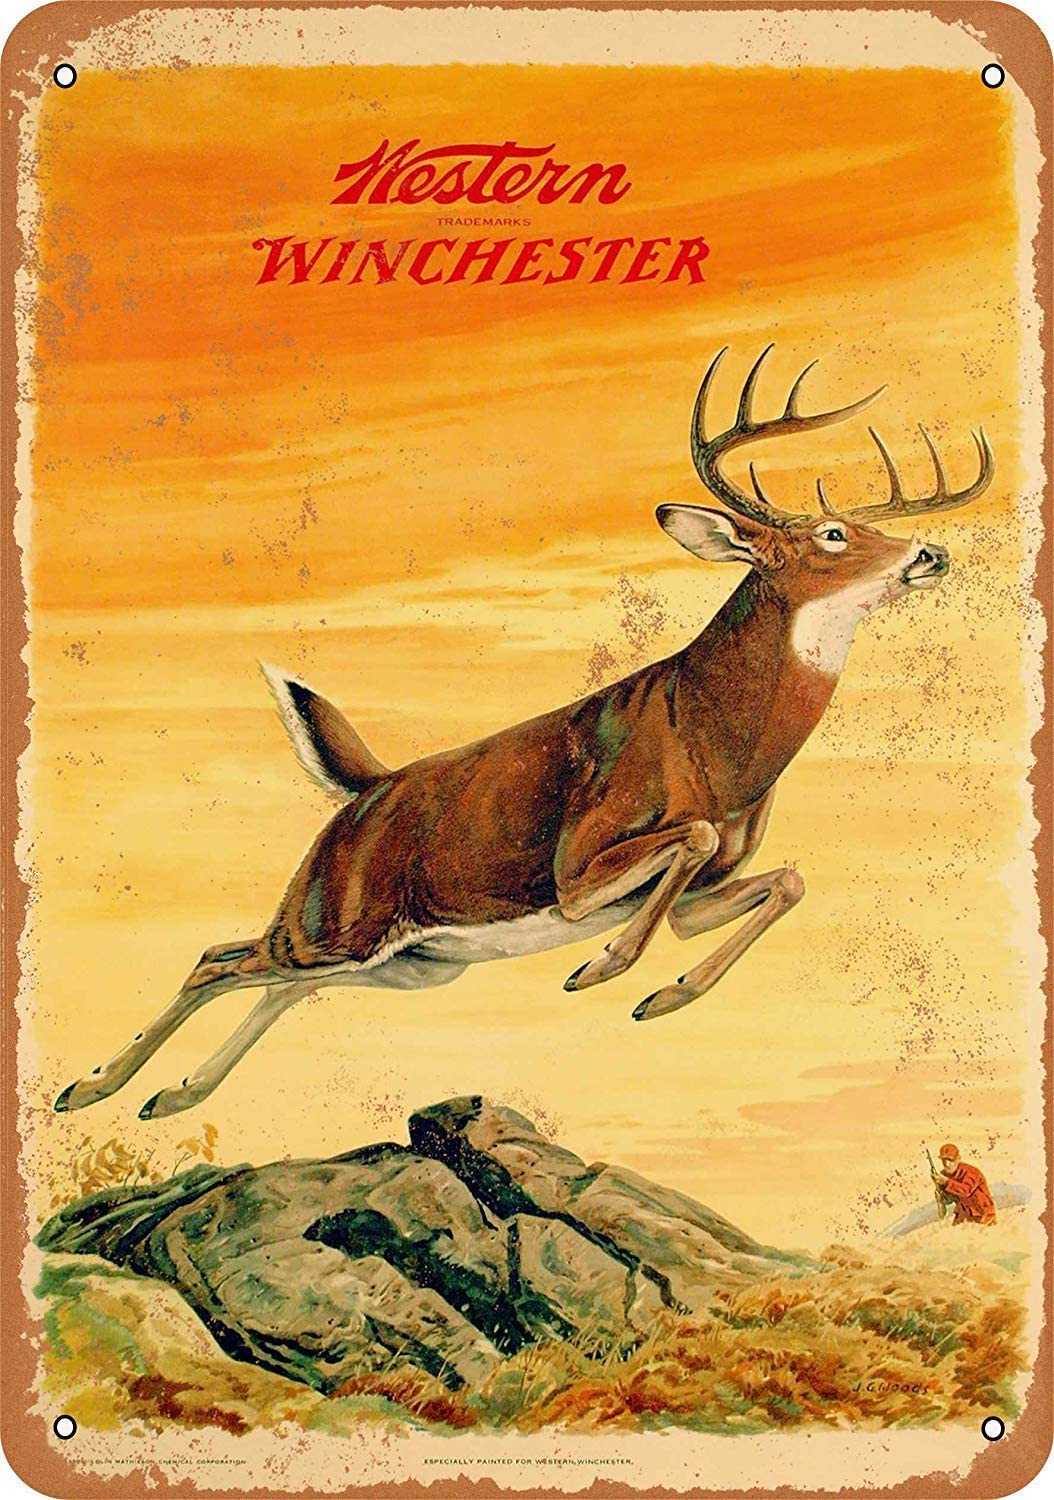 Wisesign Metal Sign 16x12 - Vintage Style/Rusty Look 1958 Western Winchester Deer, Tin Signs for Bar Pub Beer Home Garage Man Cave Wall Decor